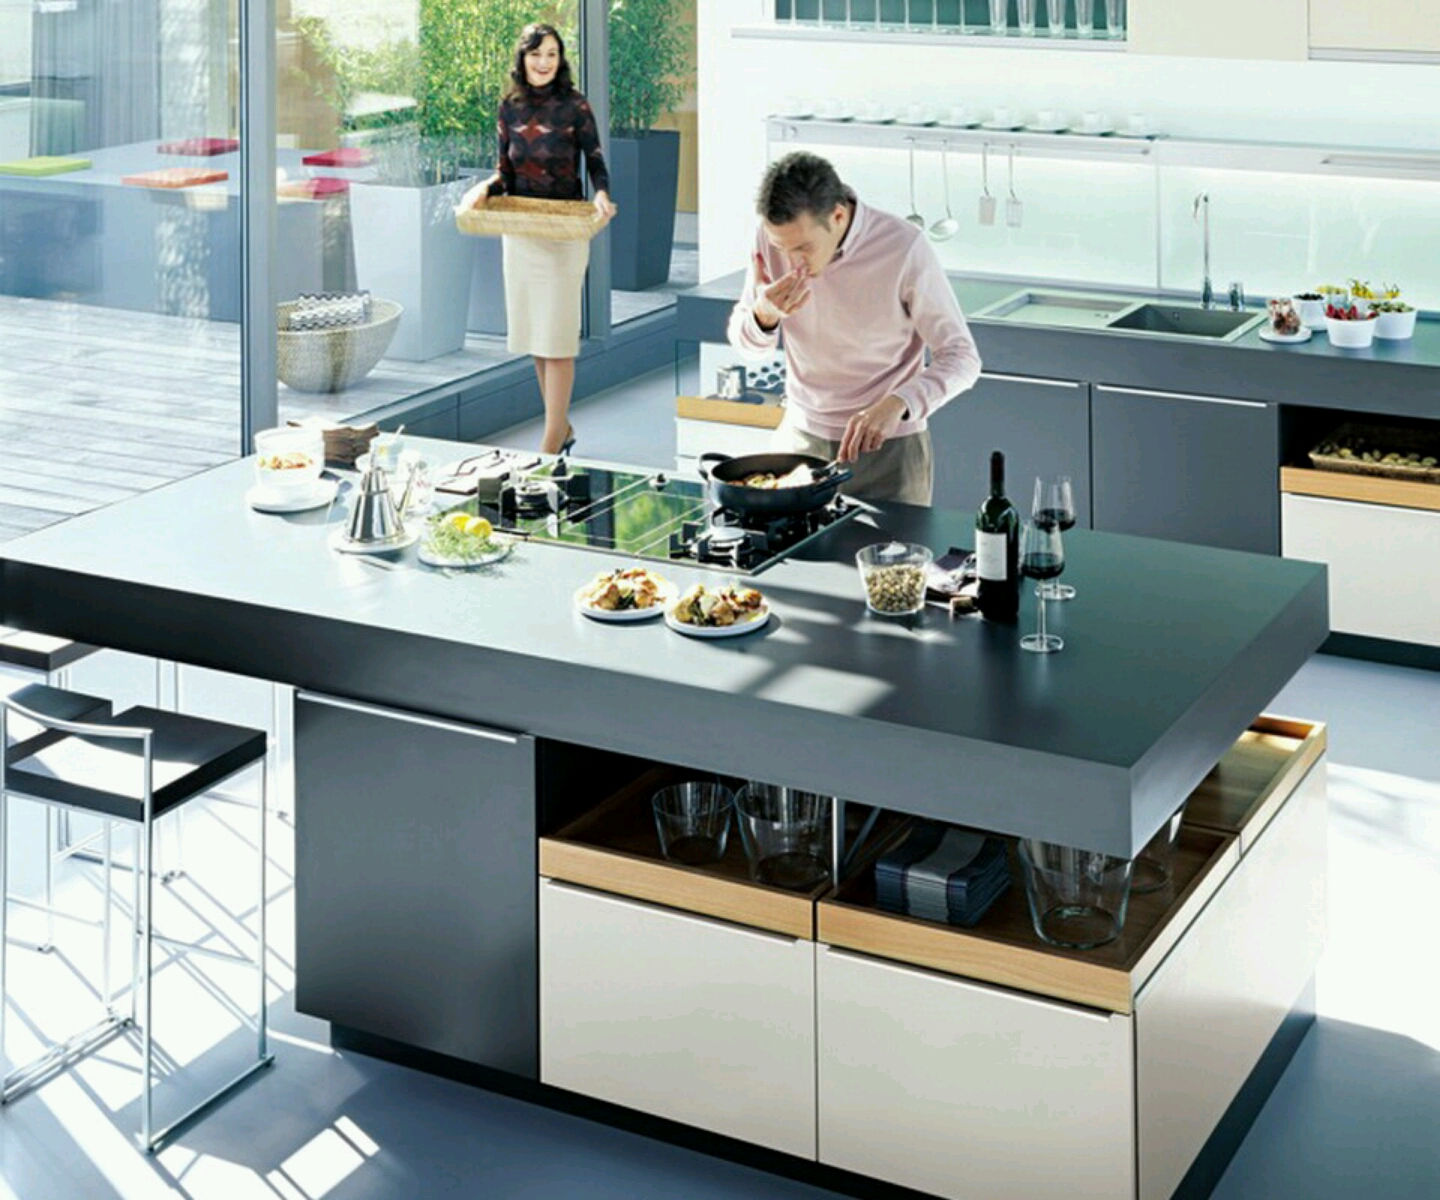 Kitchen Design Ideas 2012 Part - 20: Modern Kitchen Designs Ideas.